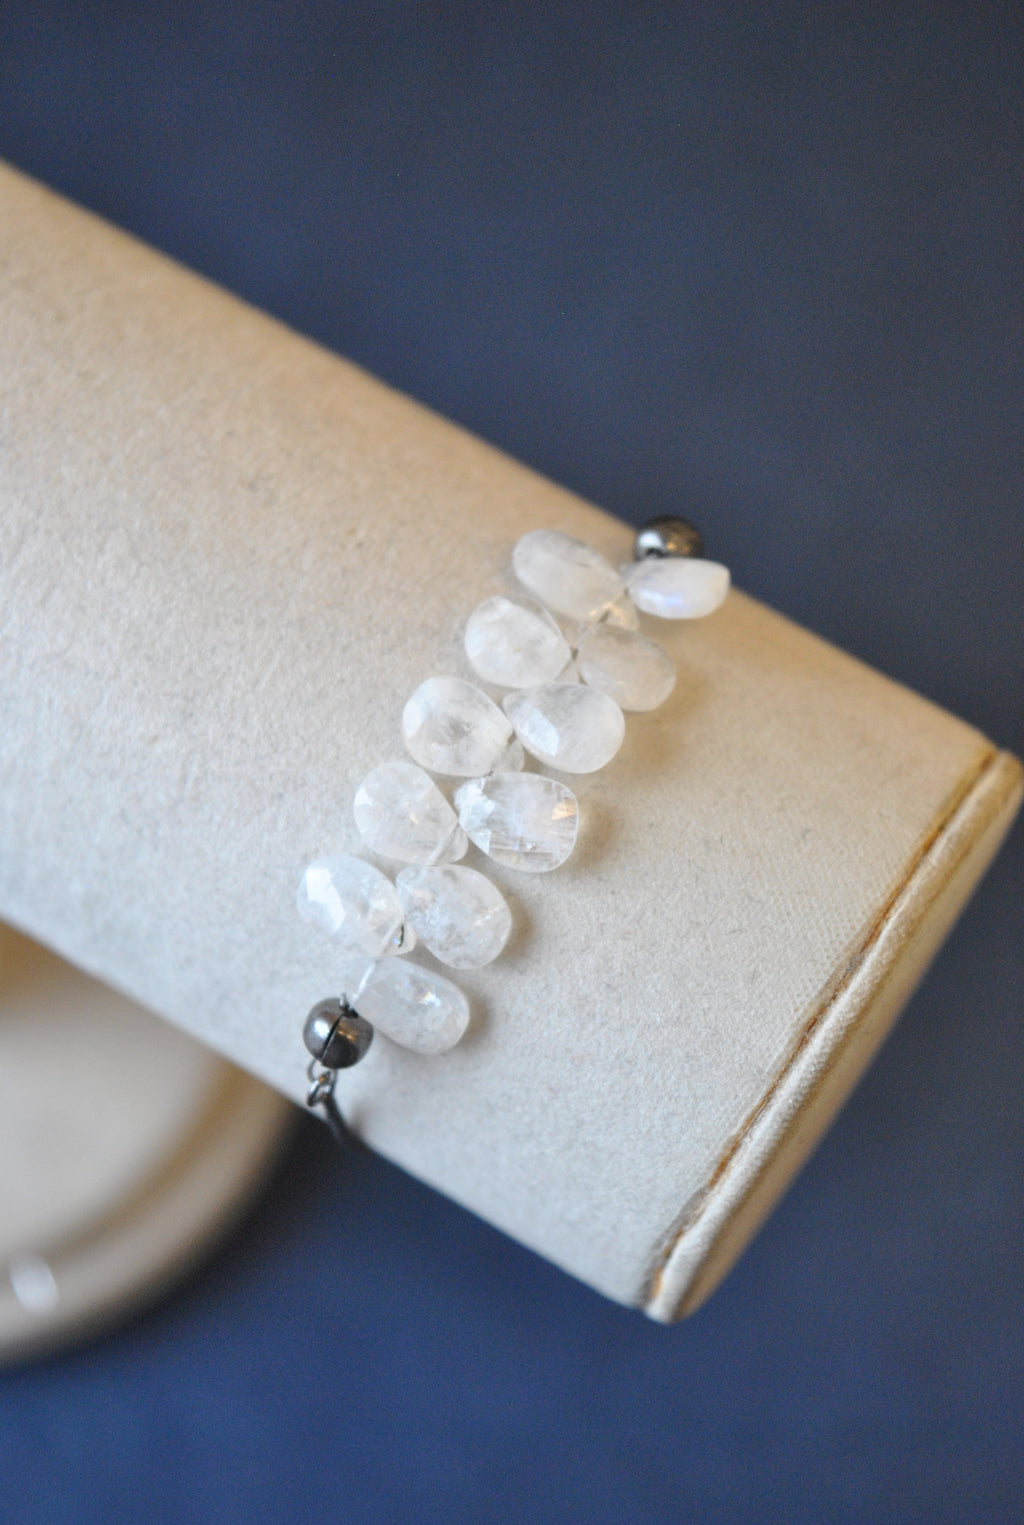 MOONSTONE TEARDROPS DELICATE ADJUSTABLE DELICATE BRACELET